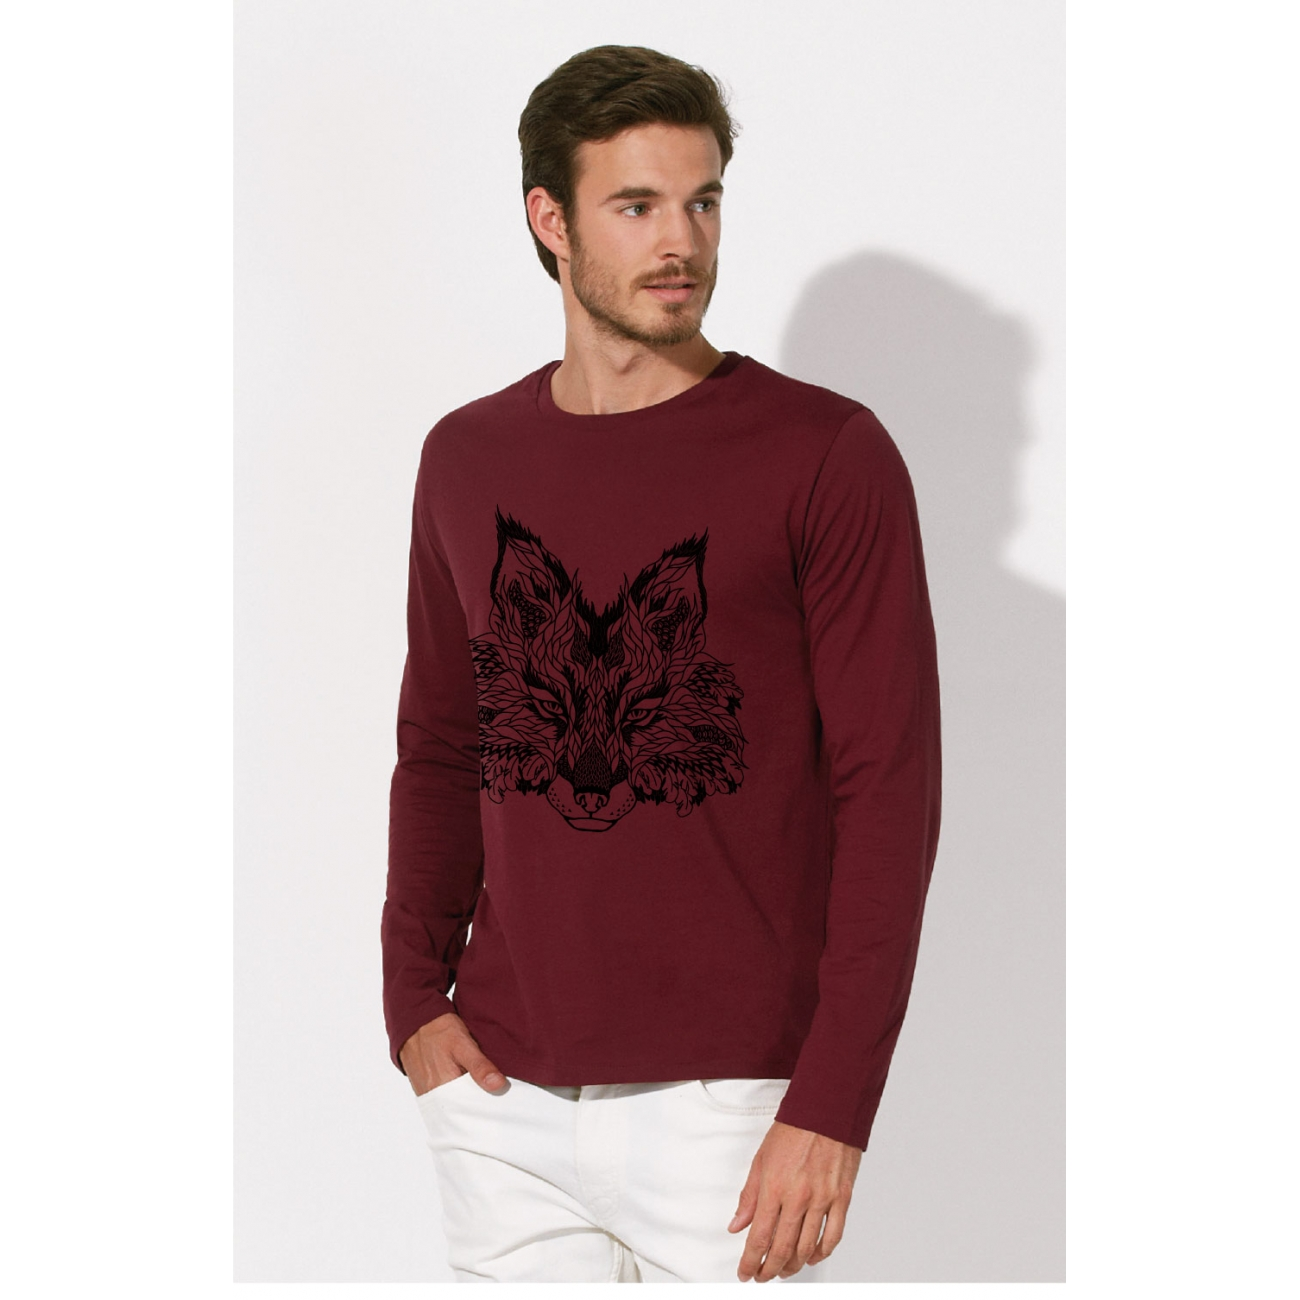 https://tee-shirt-bio.com/4437-thickbox_default/manches-longues-tee-shirt-homme-100-coton-bio-doux-equitable-bordeaux-imprime-loup.jpg